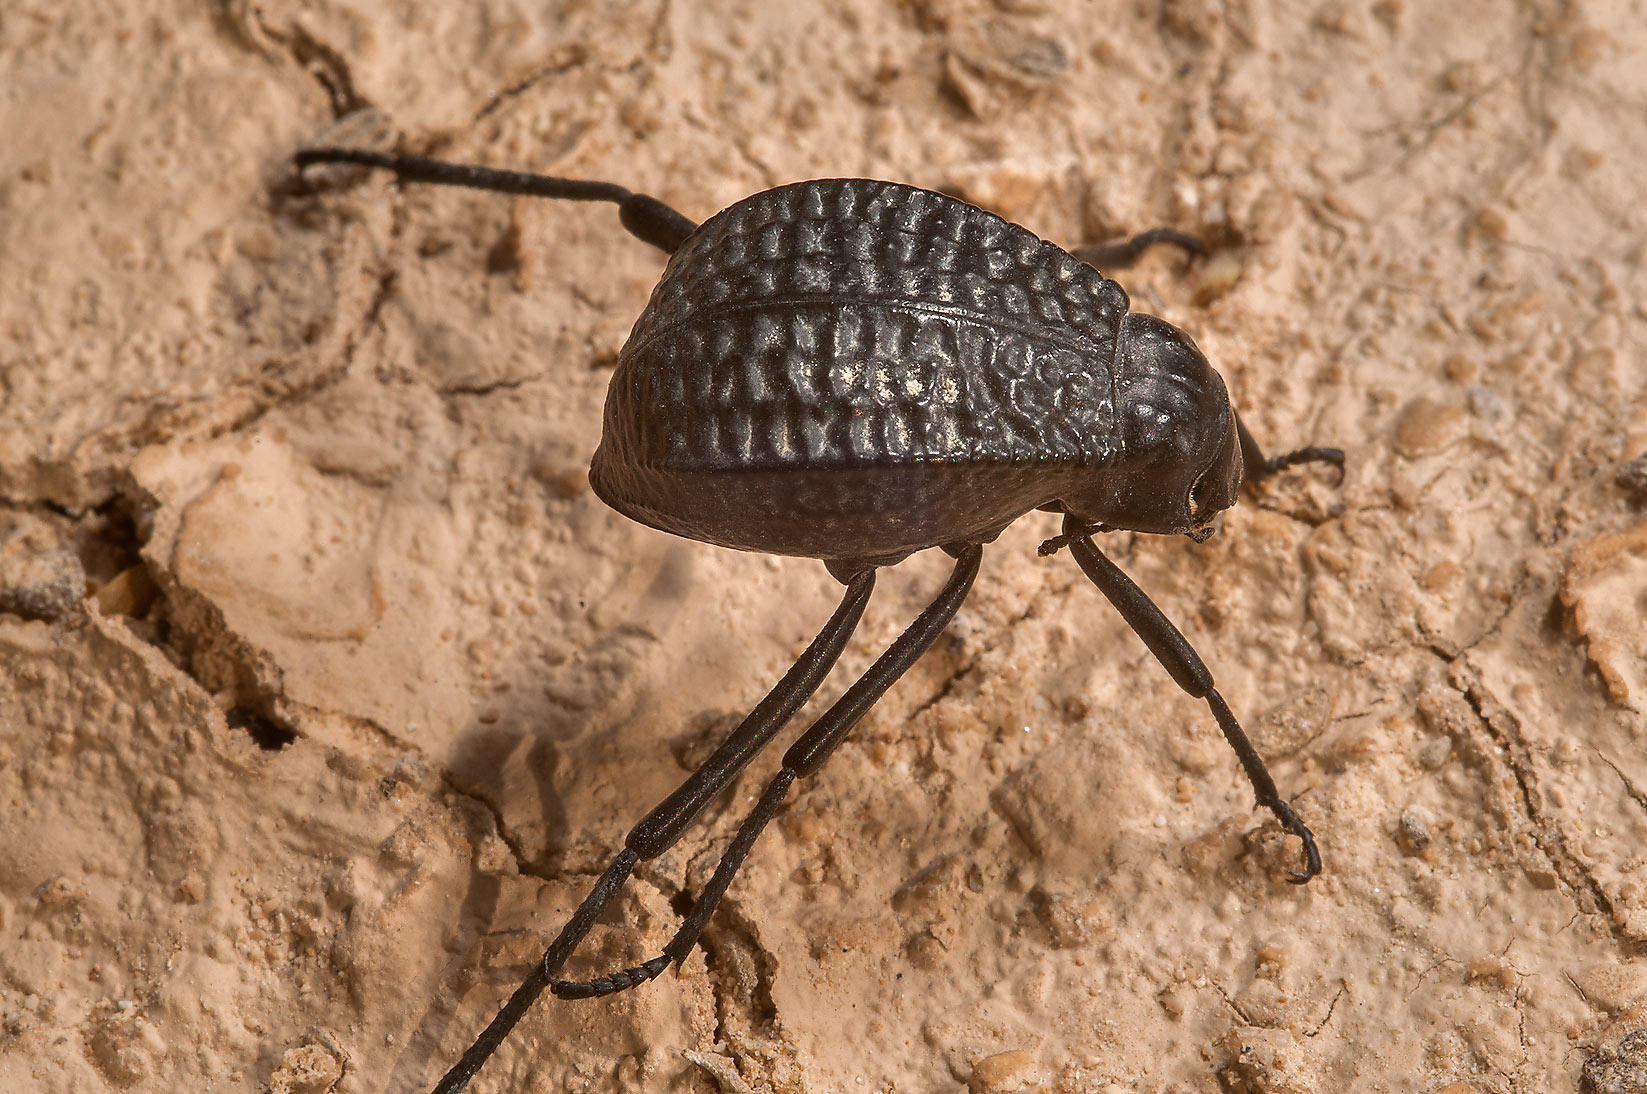 Pitted darkling beetle (Adesmia cancellata) near...of Ras Laffan, north from Doha. Qatar